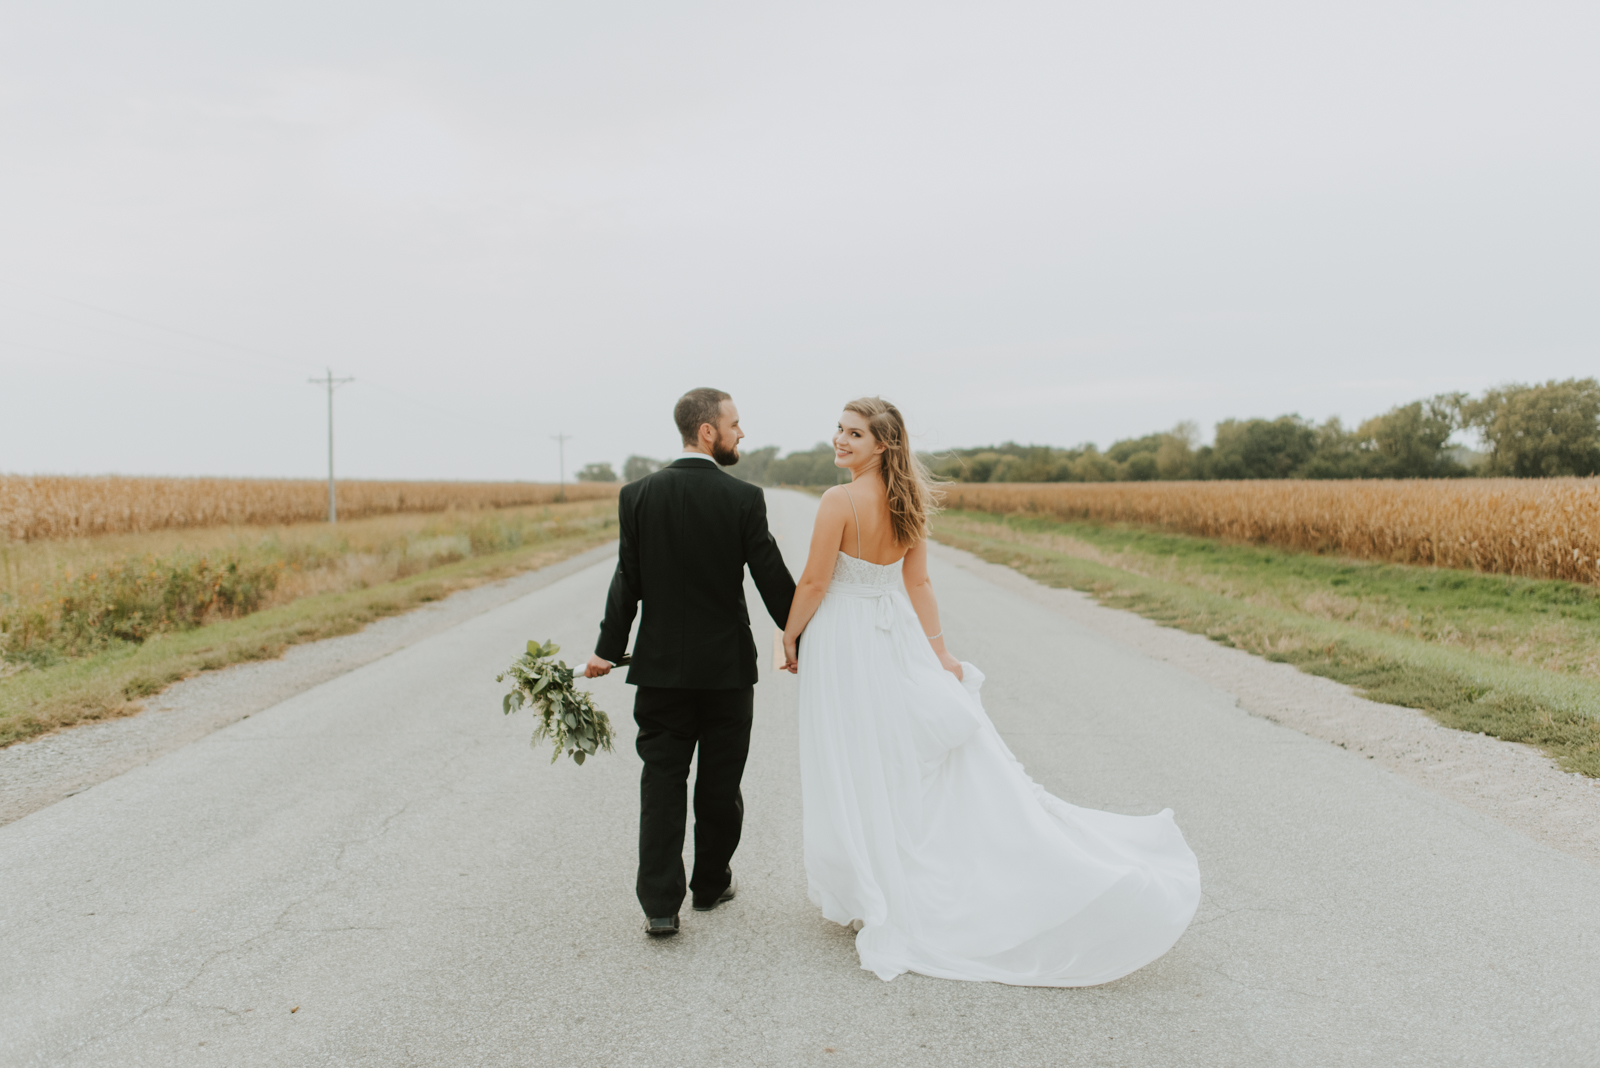 taylor and tylers bridal portraits at their hillside wedding at wishing hills barn in iowa